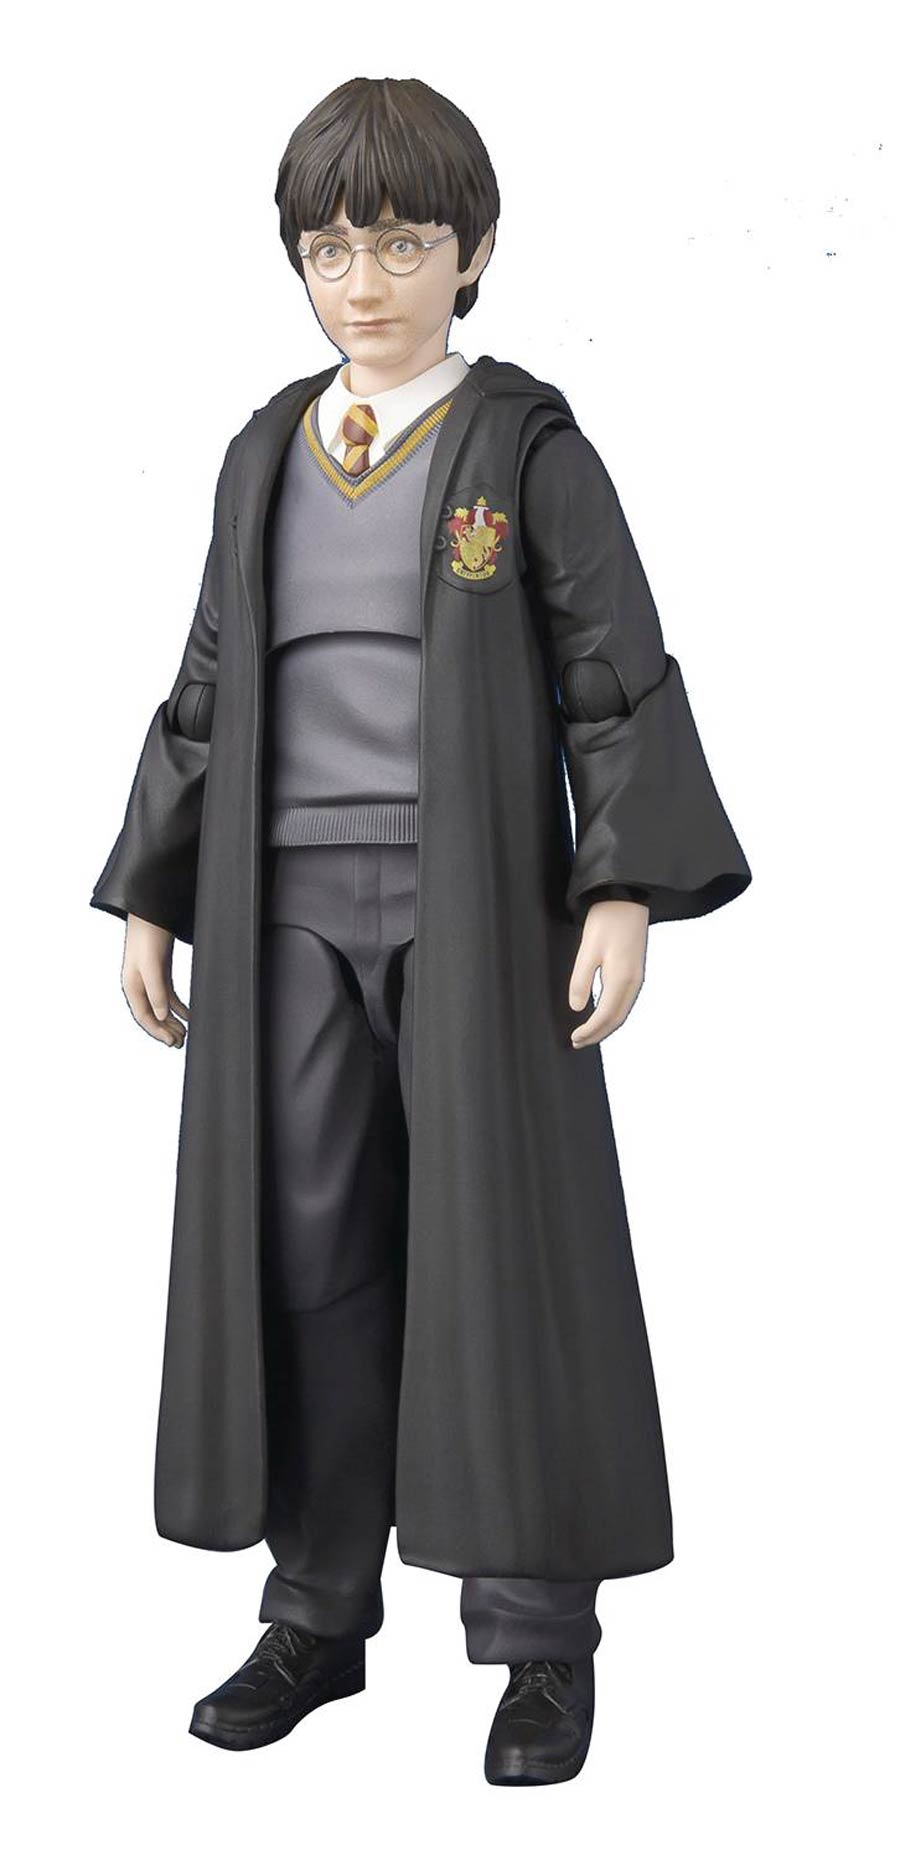 Harry Potter And The Sorcerers Stone S. H. Figuarts - Harry Potter Action Figure